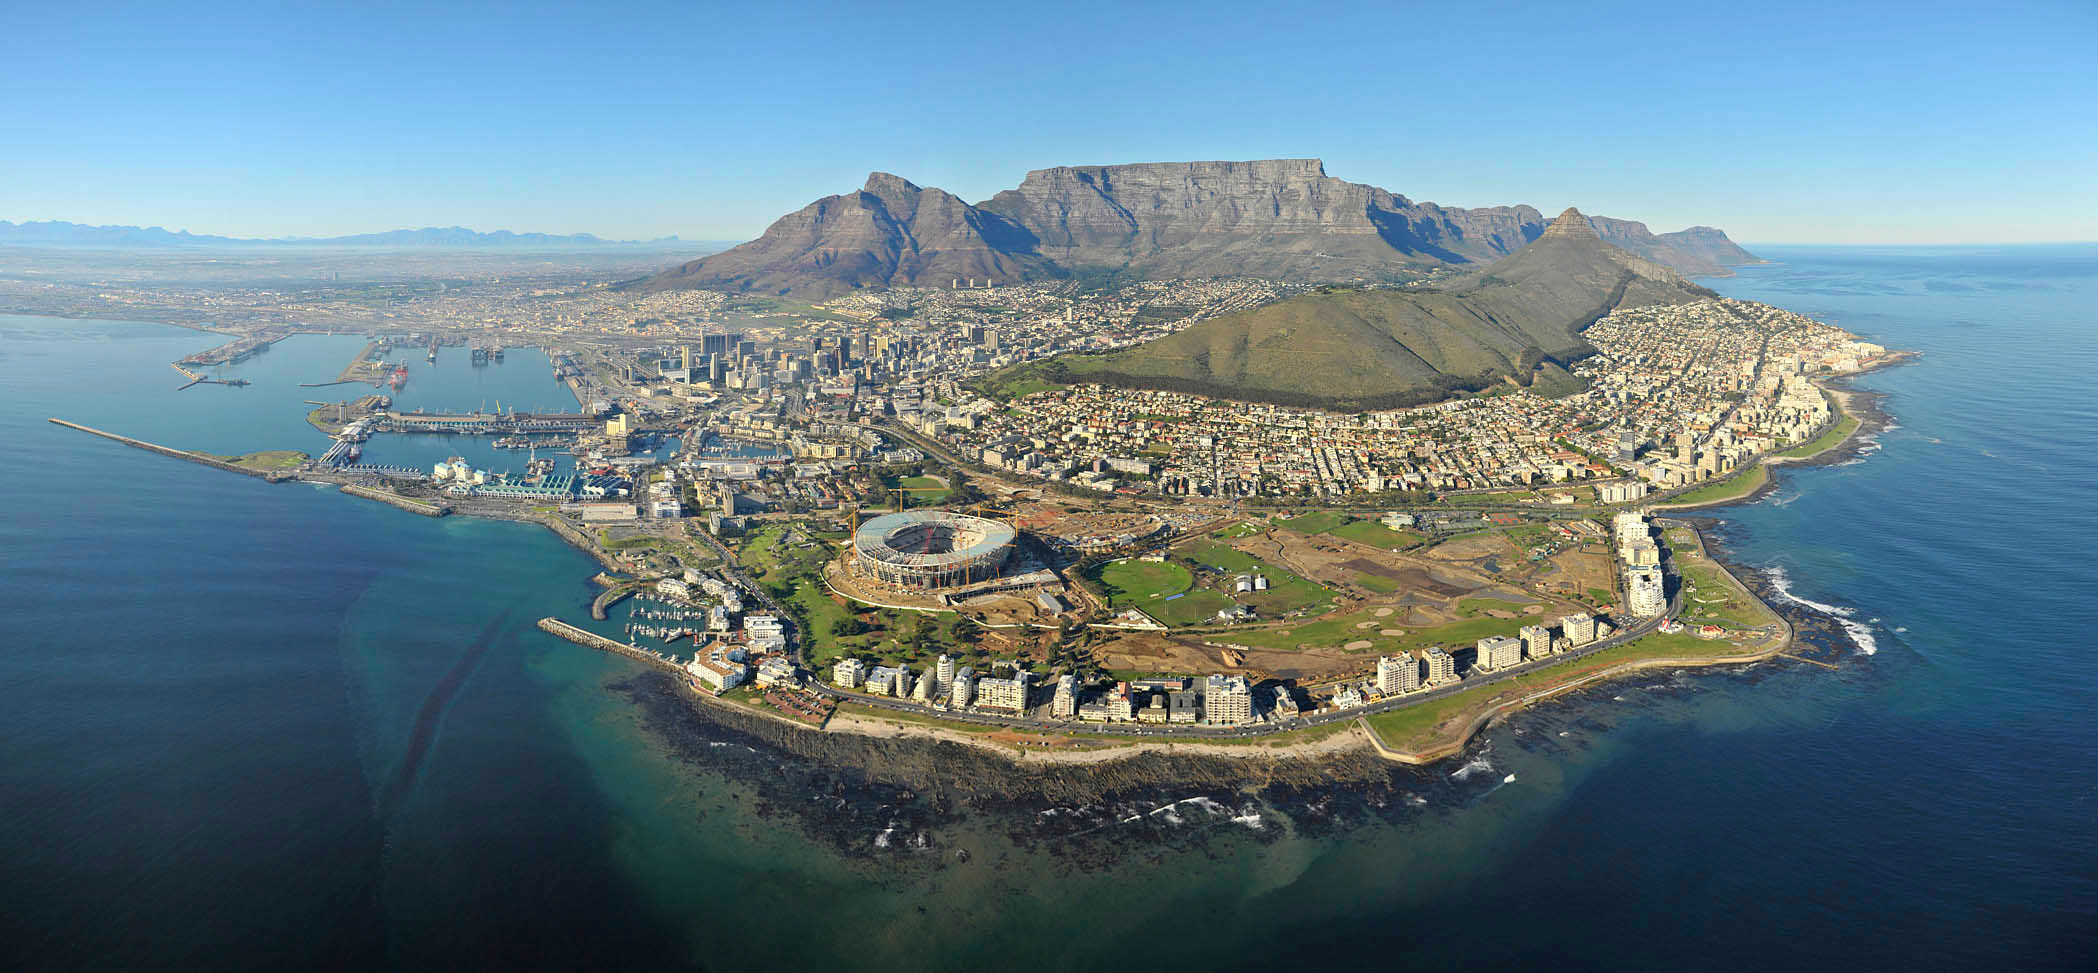 South Africa Cape Town Desktop Wallpaper Wallpapers Stunning Hd Tip 2098x973